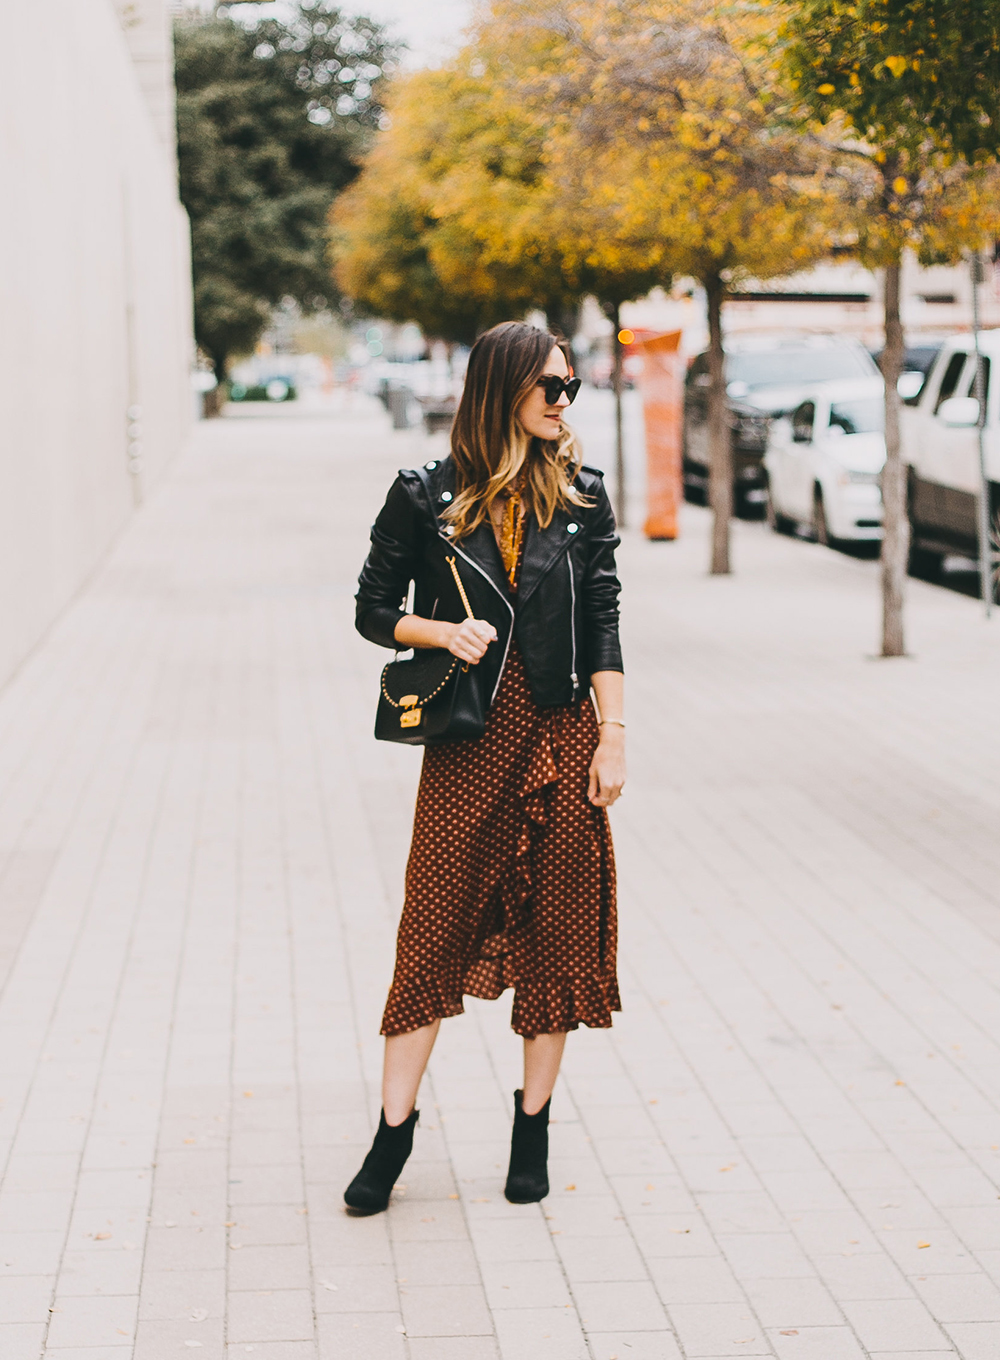 livvyland-blog-olivia-watson-austin-texas-fashion-blogger-urban-outfitters-wrap-dress-sezane-leather-jacket-fall-outfit-idea-3